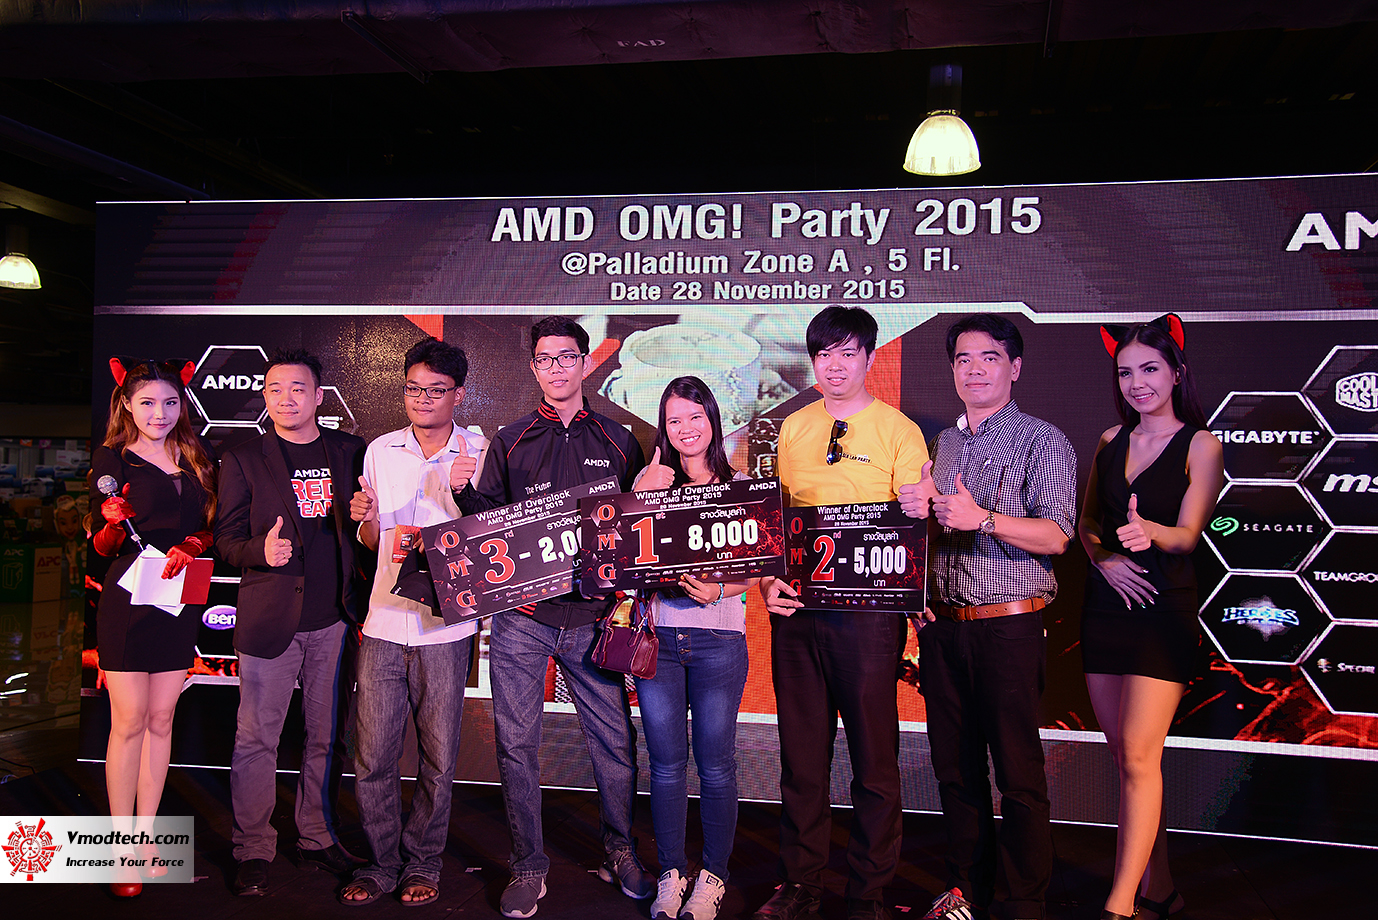 dsc 7950 AMD OMG! Party 2015 (AMD Overclock Modding Gaming Party 2015)